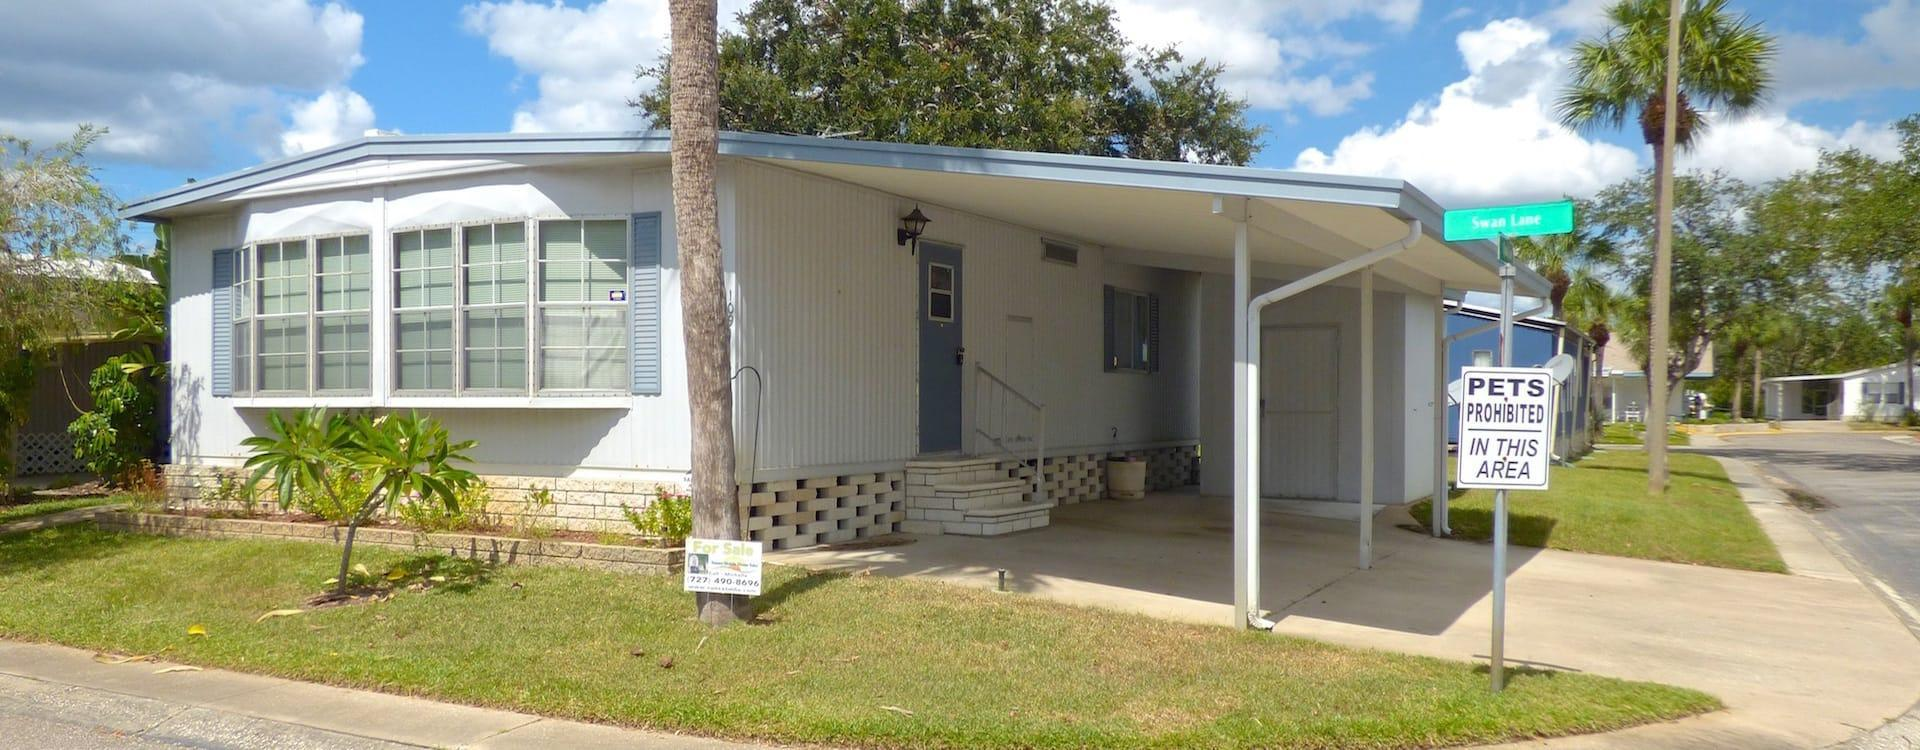 Mobile Homes For Sale In Palm Springs Fl